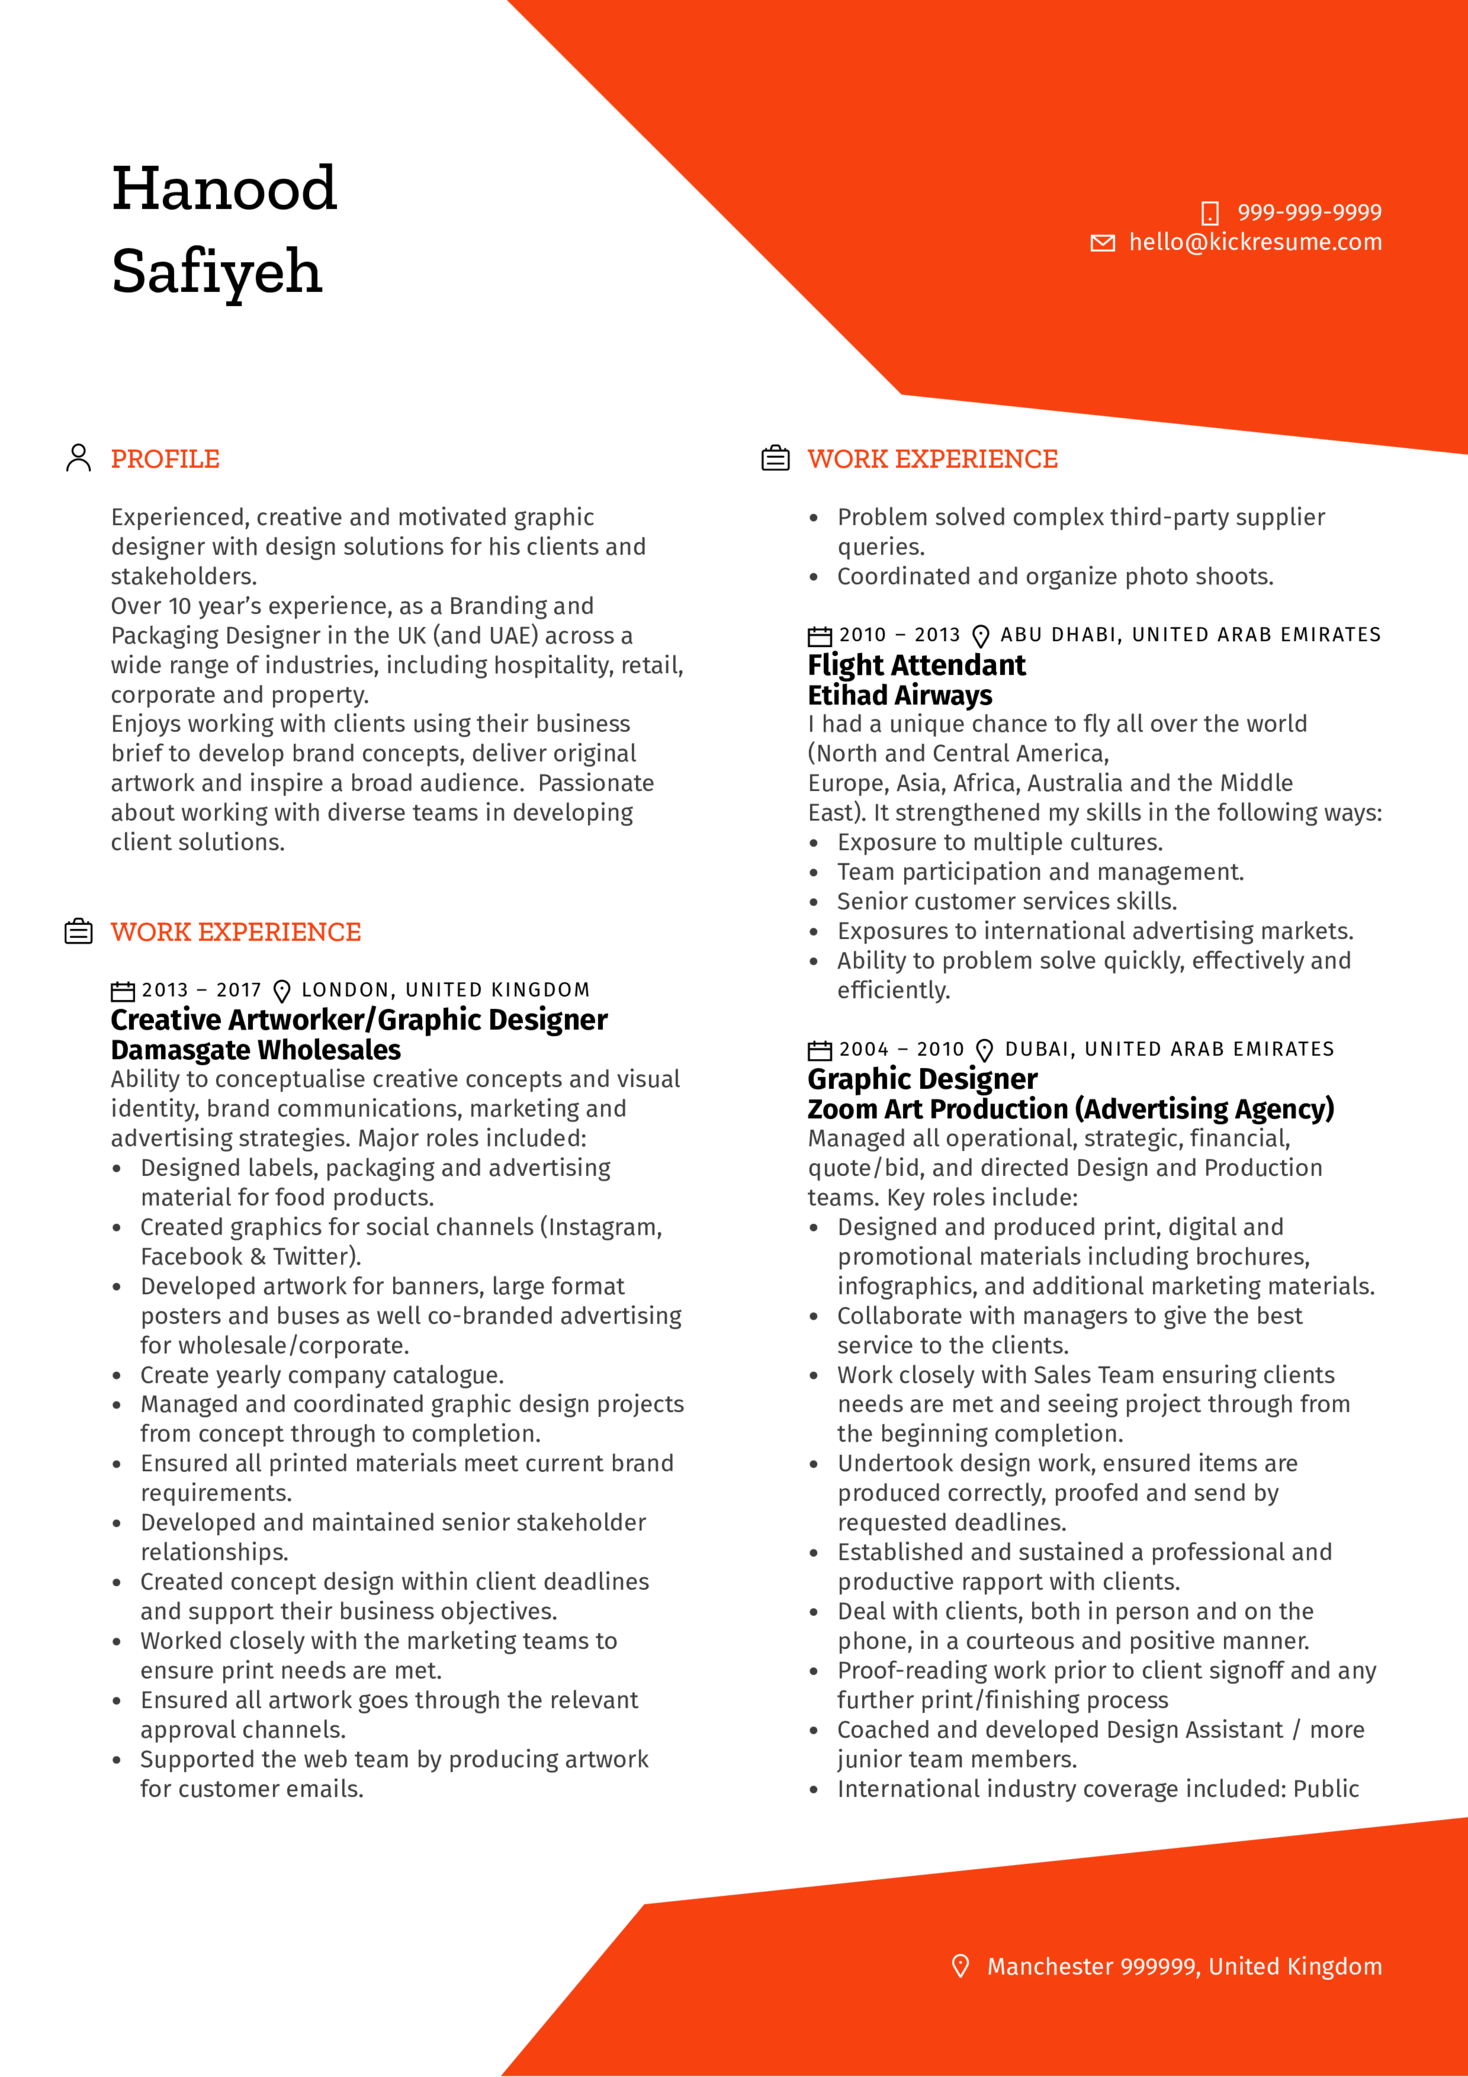 Resume Examples By Real People Maniere De Voir Senior